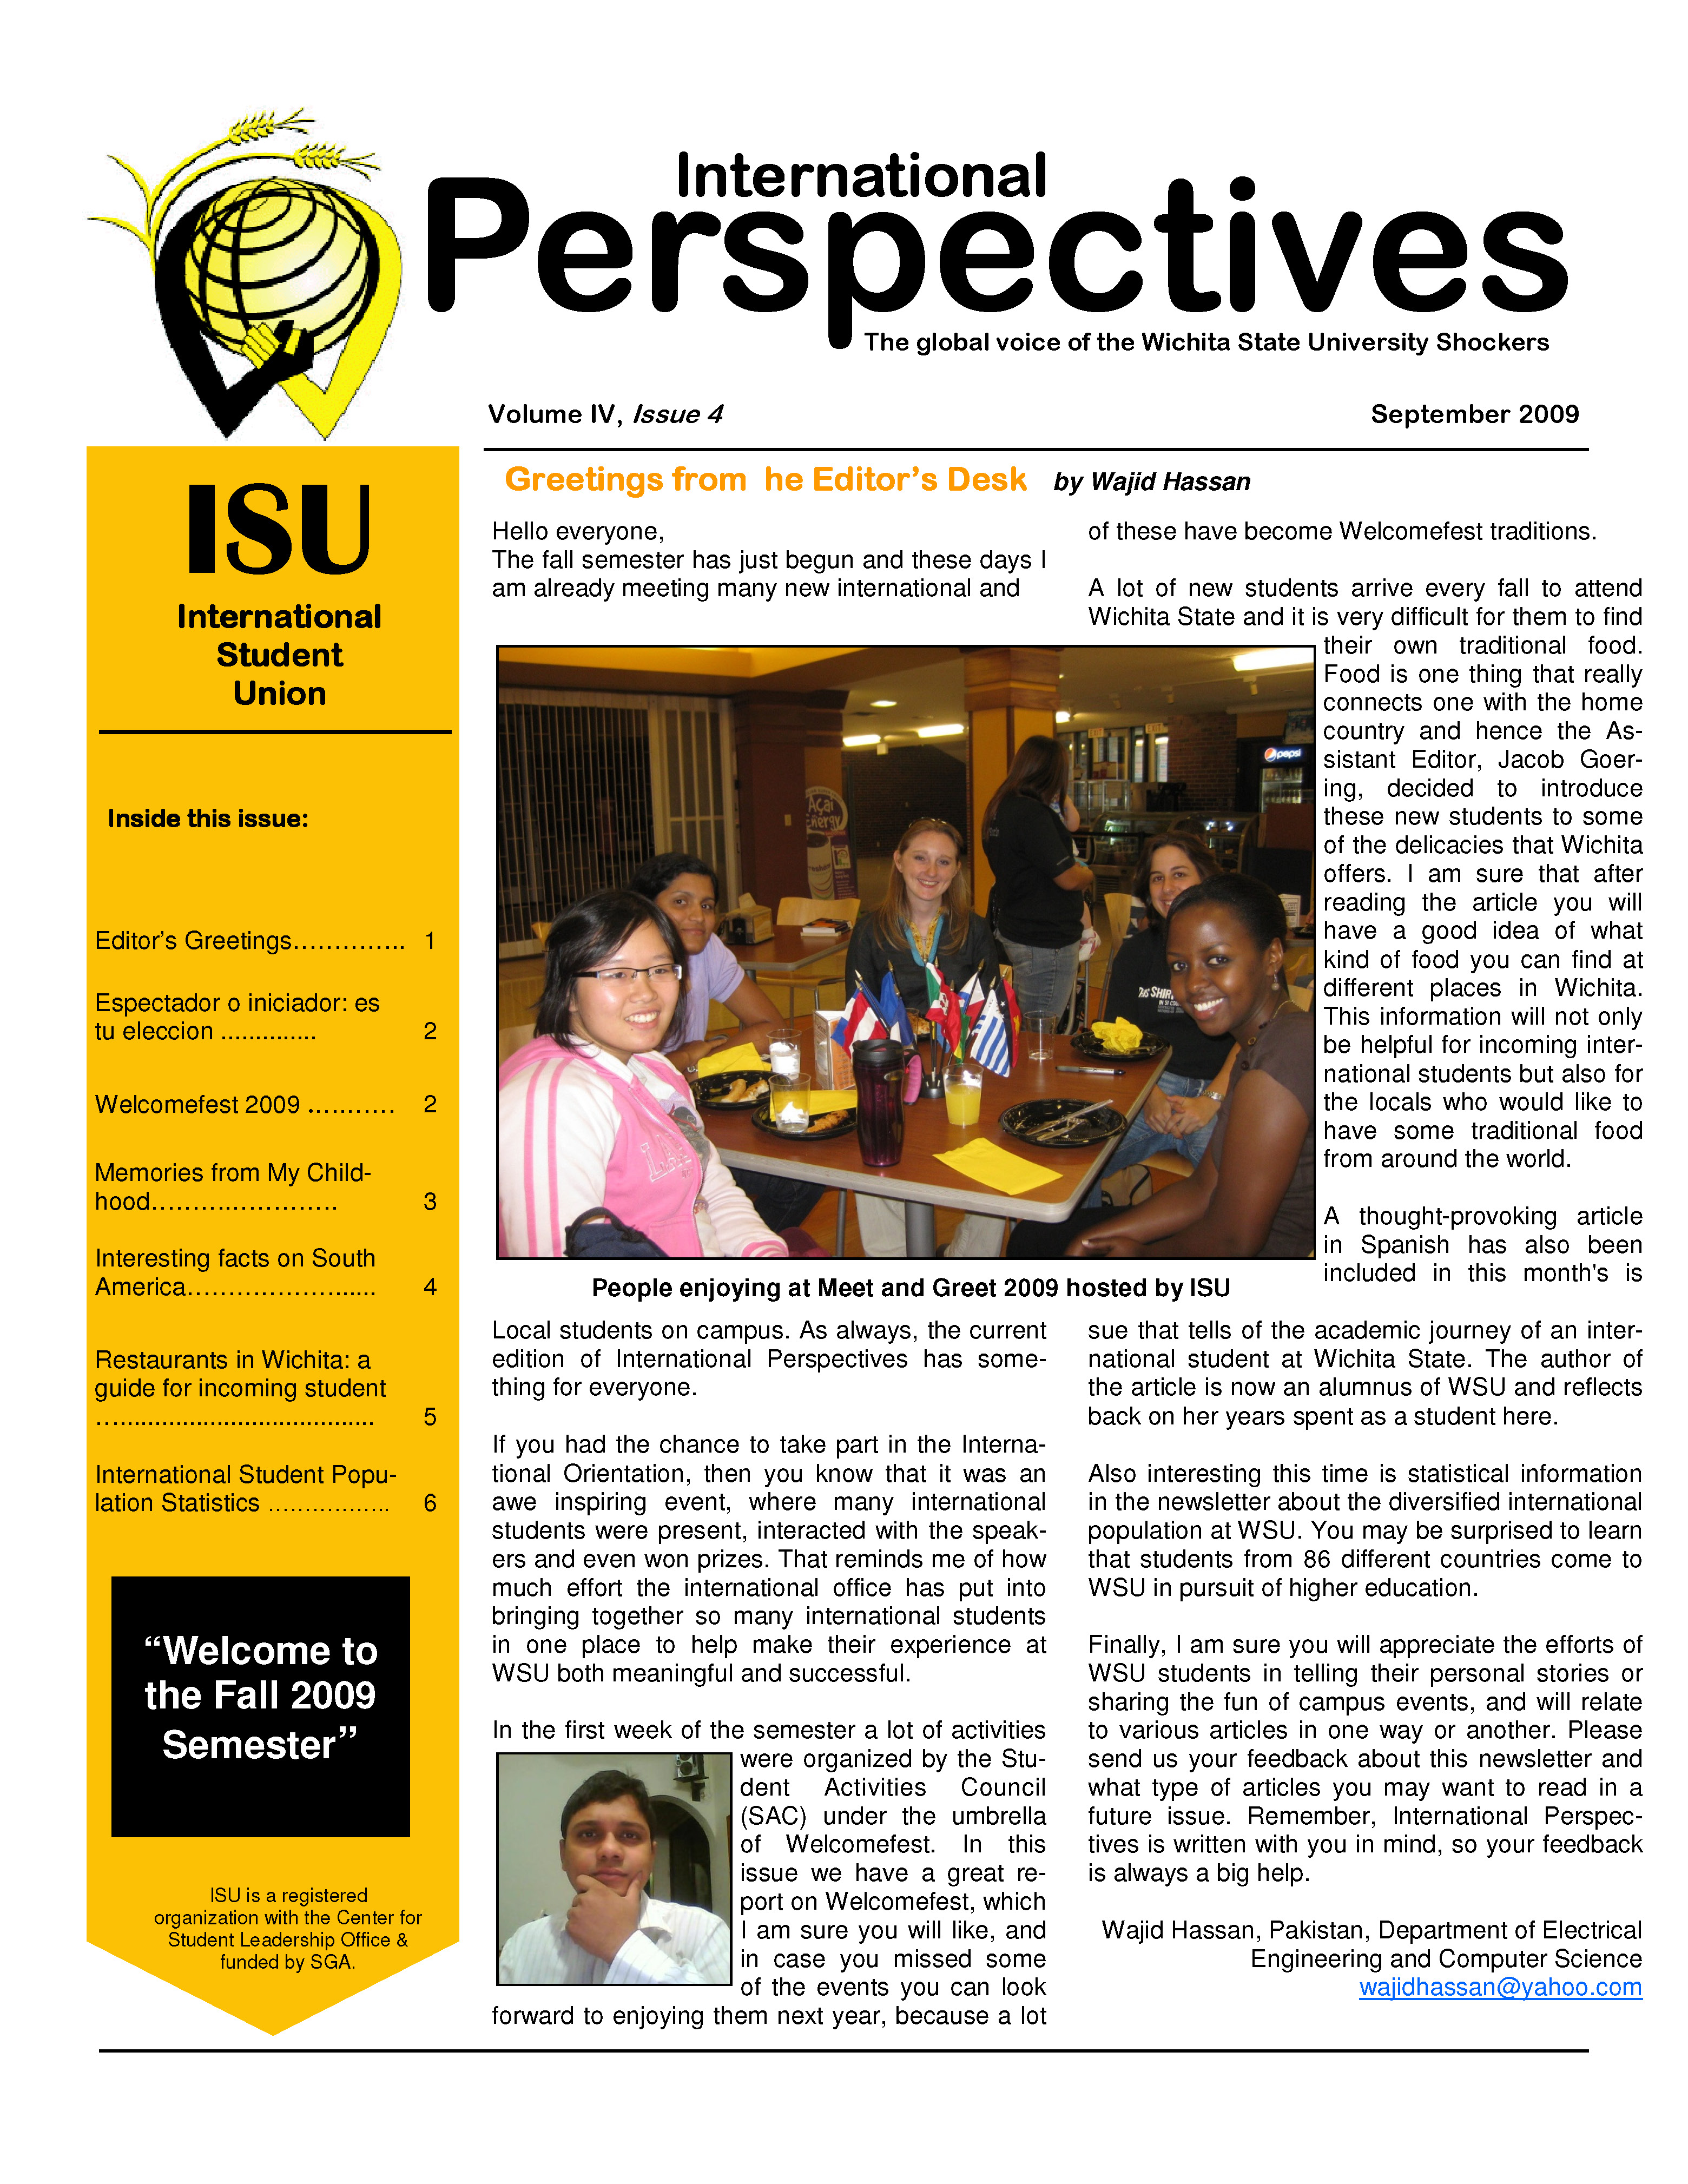 September 2009 Issue